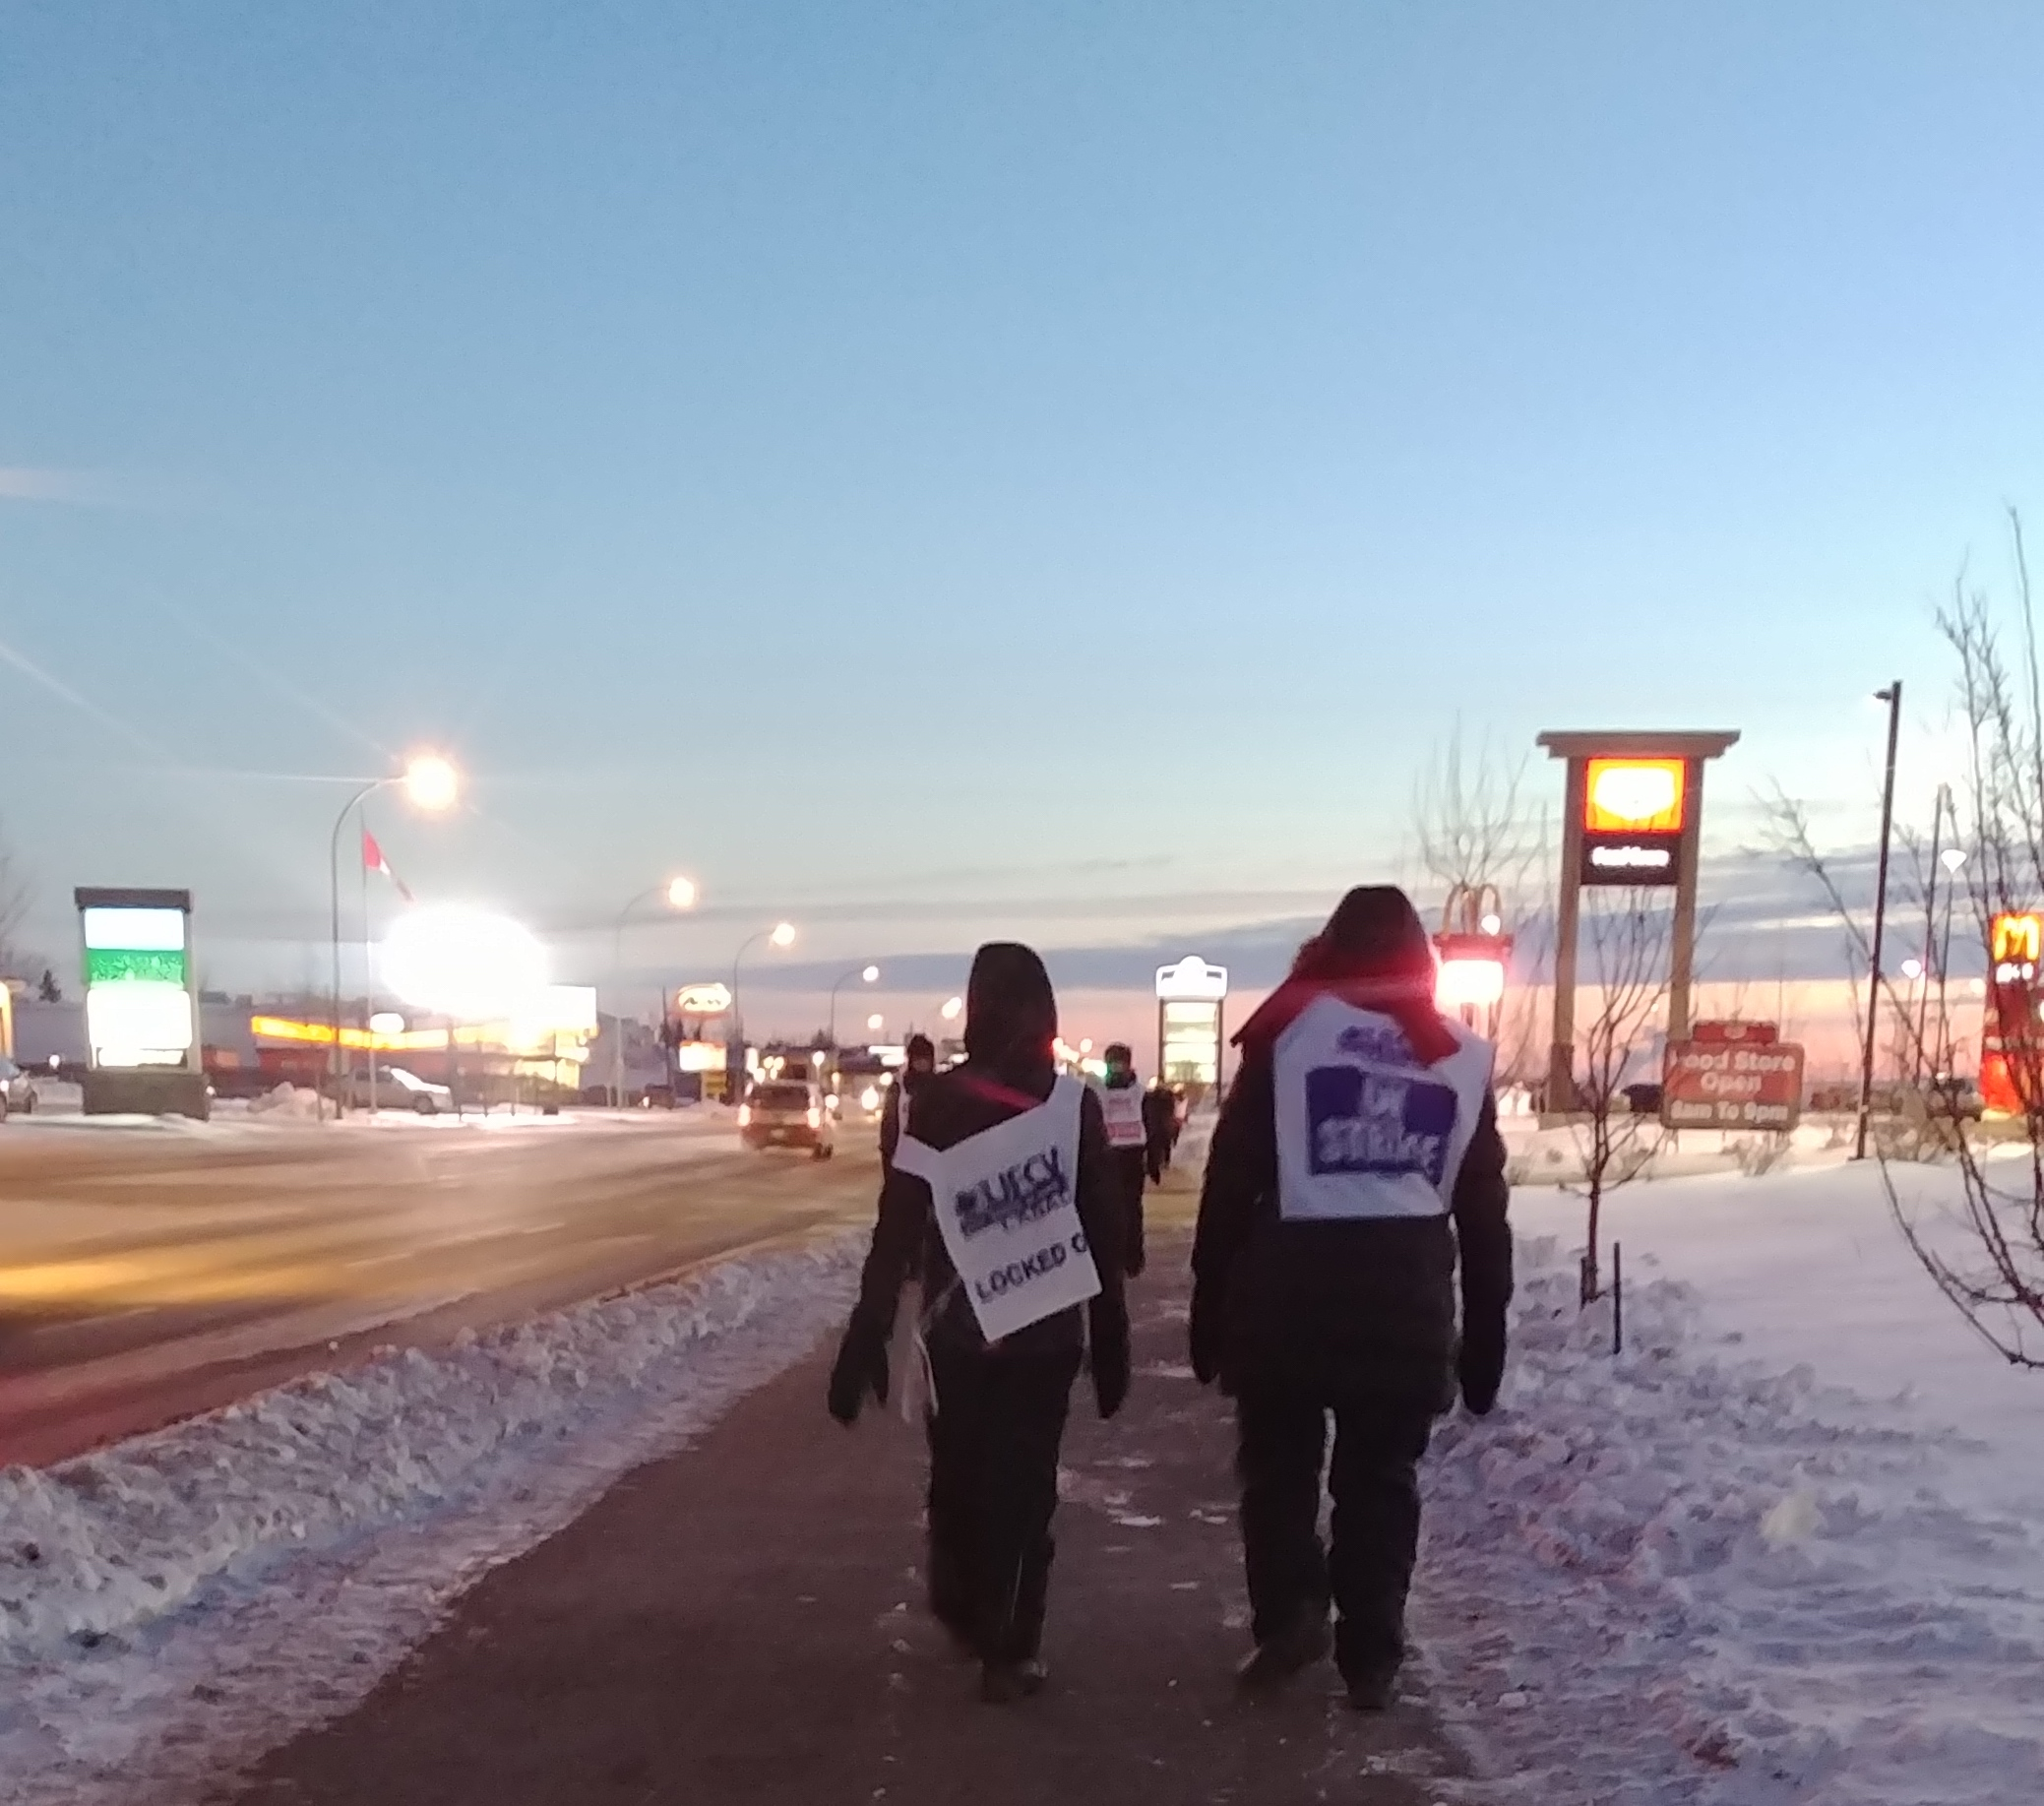 Grocery workers refuse a two-tier wage system